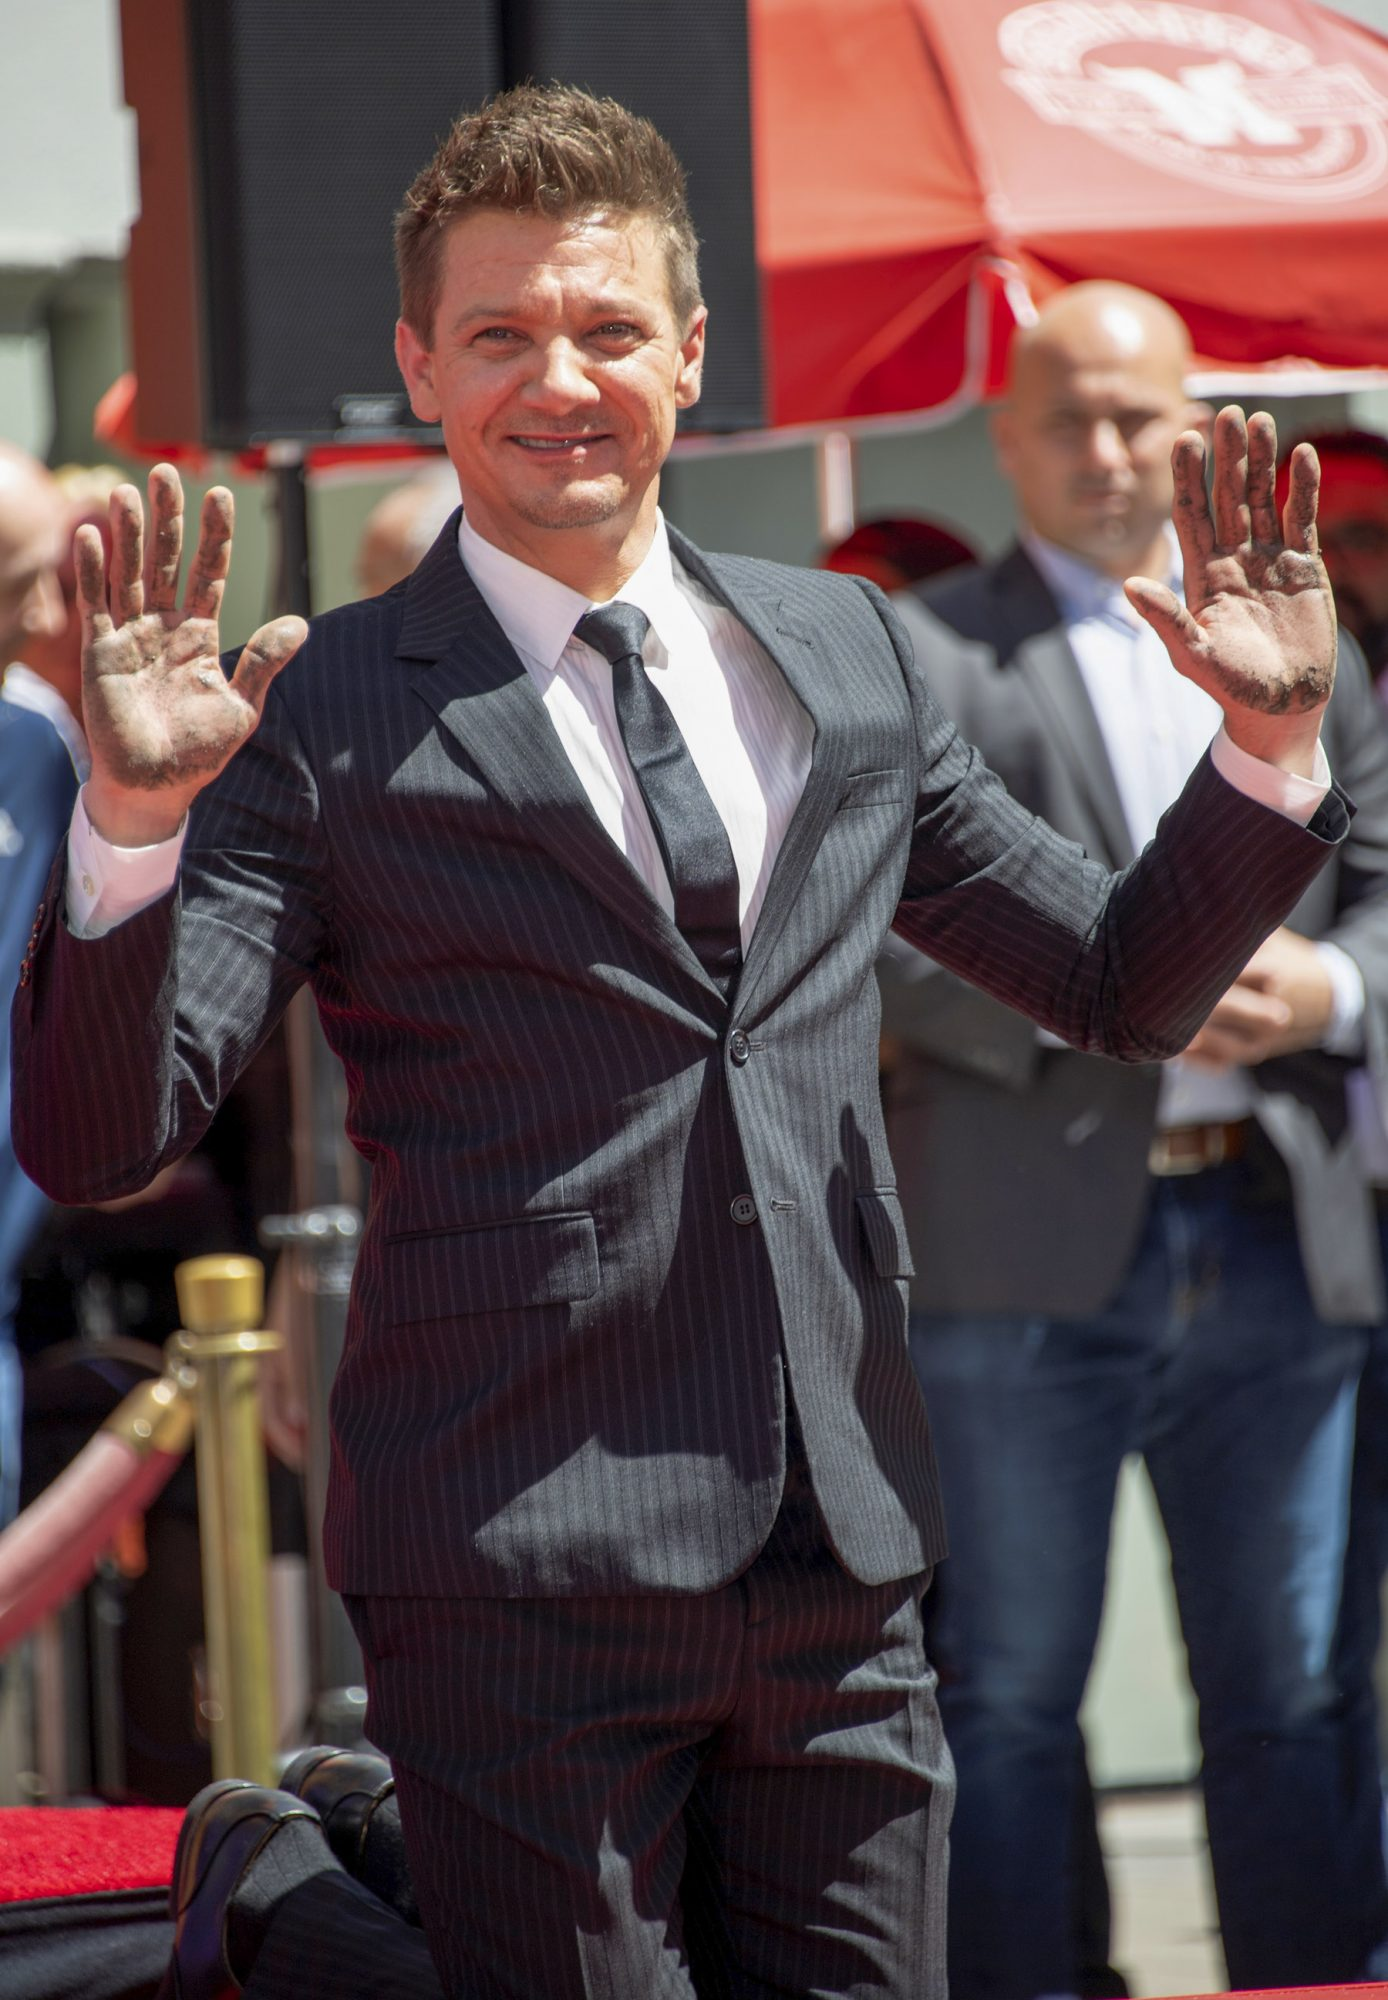 Actor Jeremy Renner attends the Marvel Studios' 'Avengers: Endgame' cast place their hand prints in cement at TCL Chinese Theatre IMAX Forecourt on April 23, 2019, in Hollywood, California. (Photo by VALERIE MACON / AFP) (Photo credit should read VALERIE MACON/AFP/Getty Images)